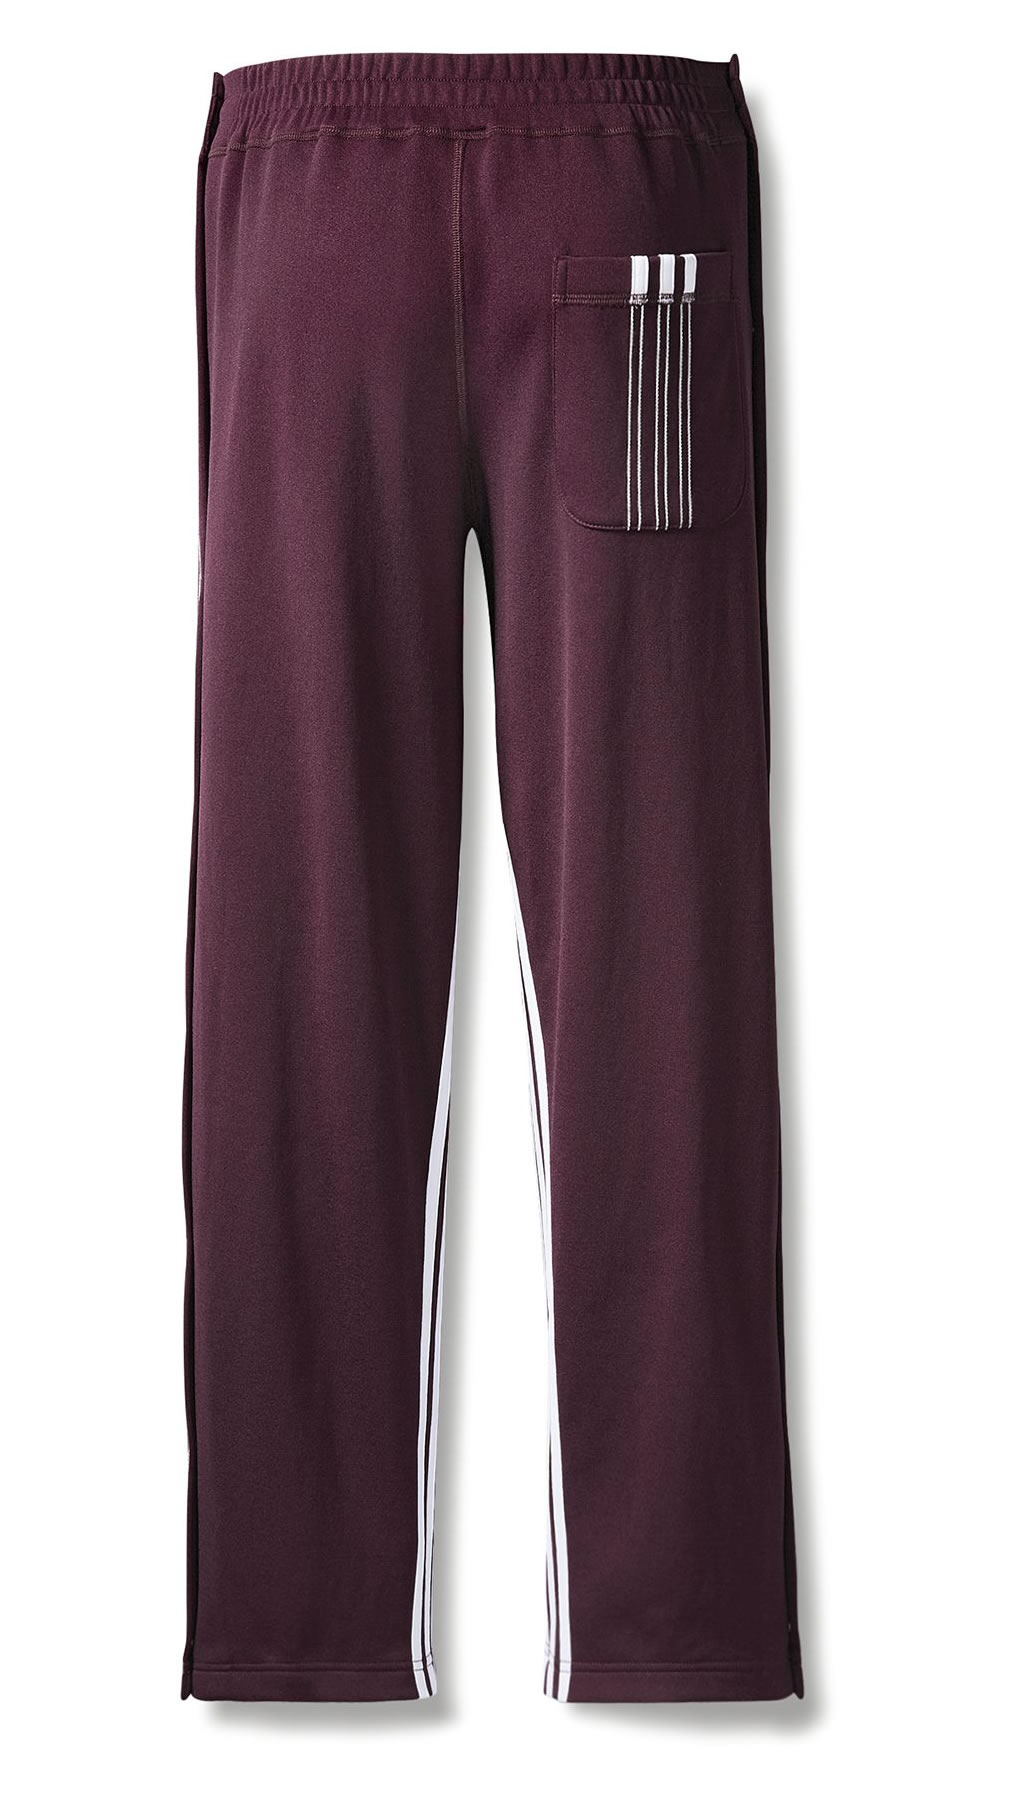 Adidas Originals by Alexander Wang Track Pants, Back